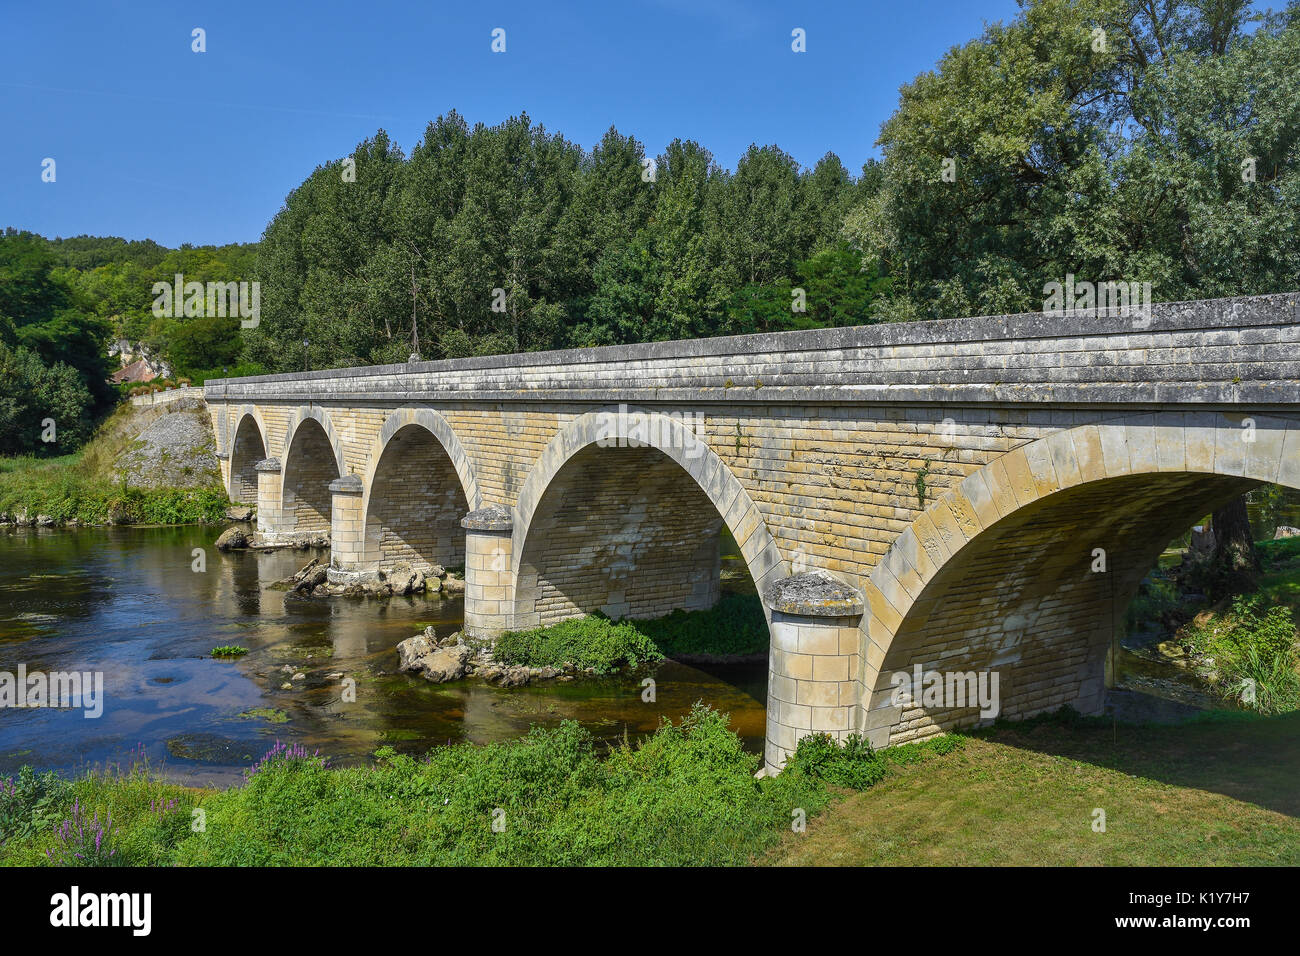 Bridge across river Gartempe, Saint-Pierre-de-Maillé, Vienne, France. - Stock Image